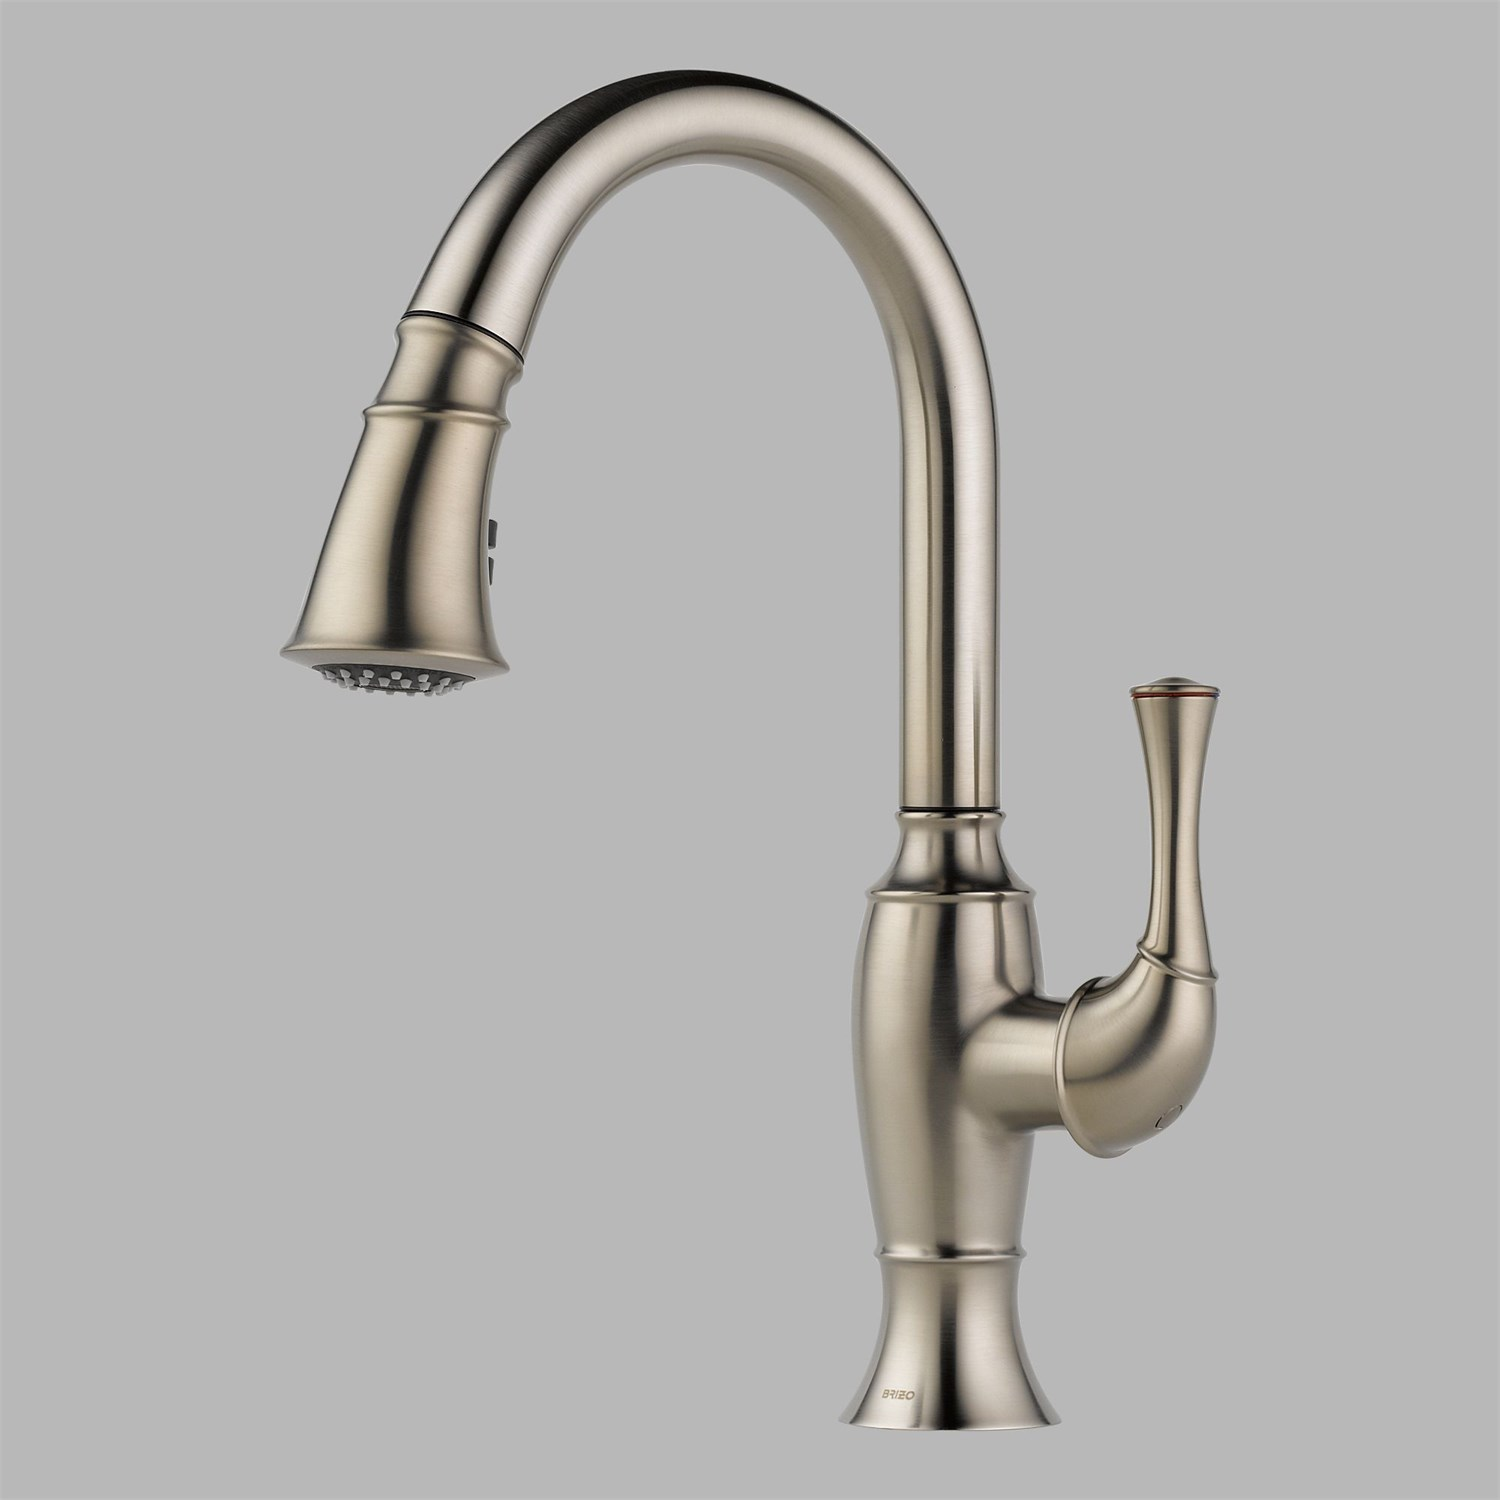 Decor High End Bathroom Faucets High End Faucets